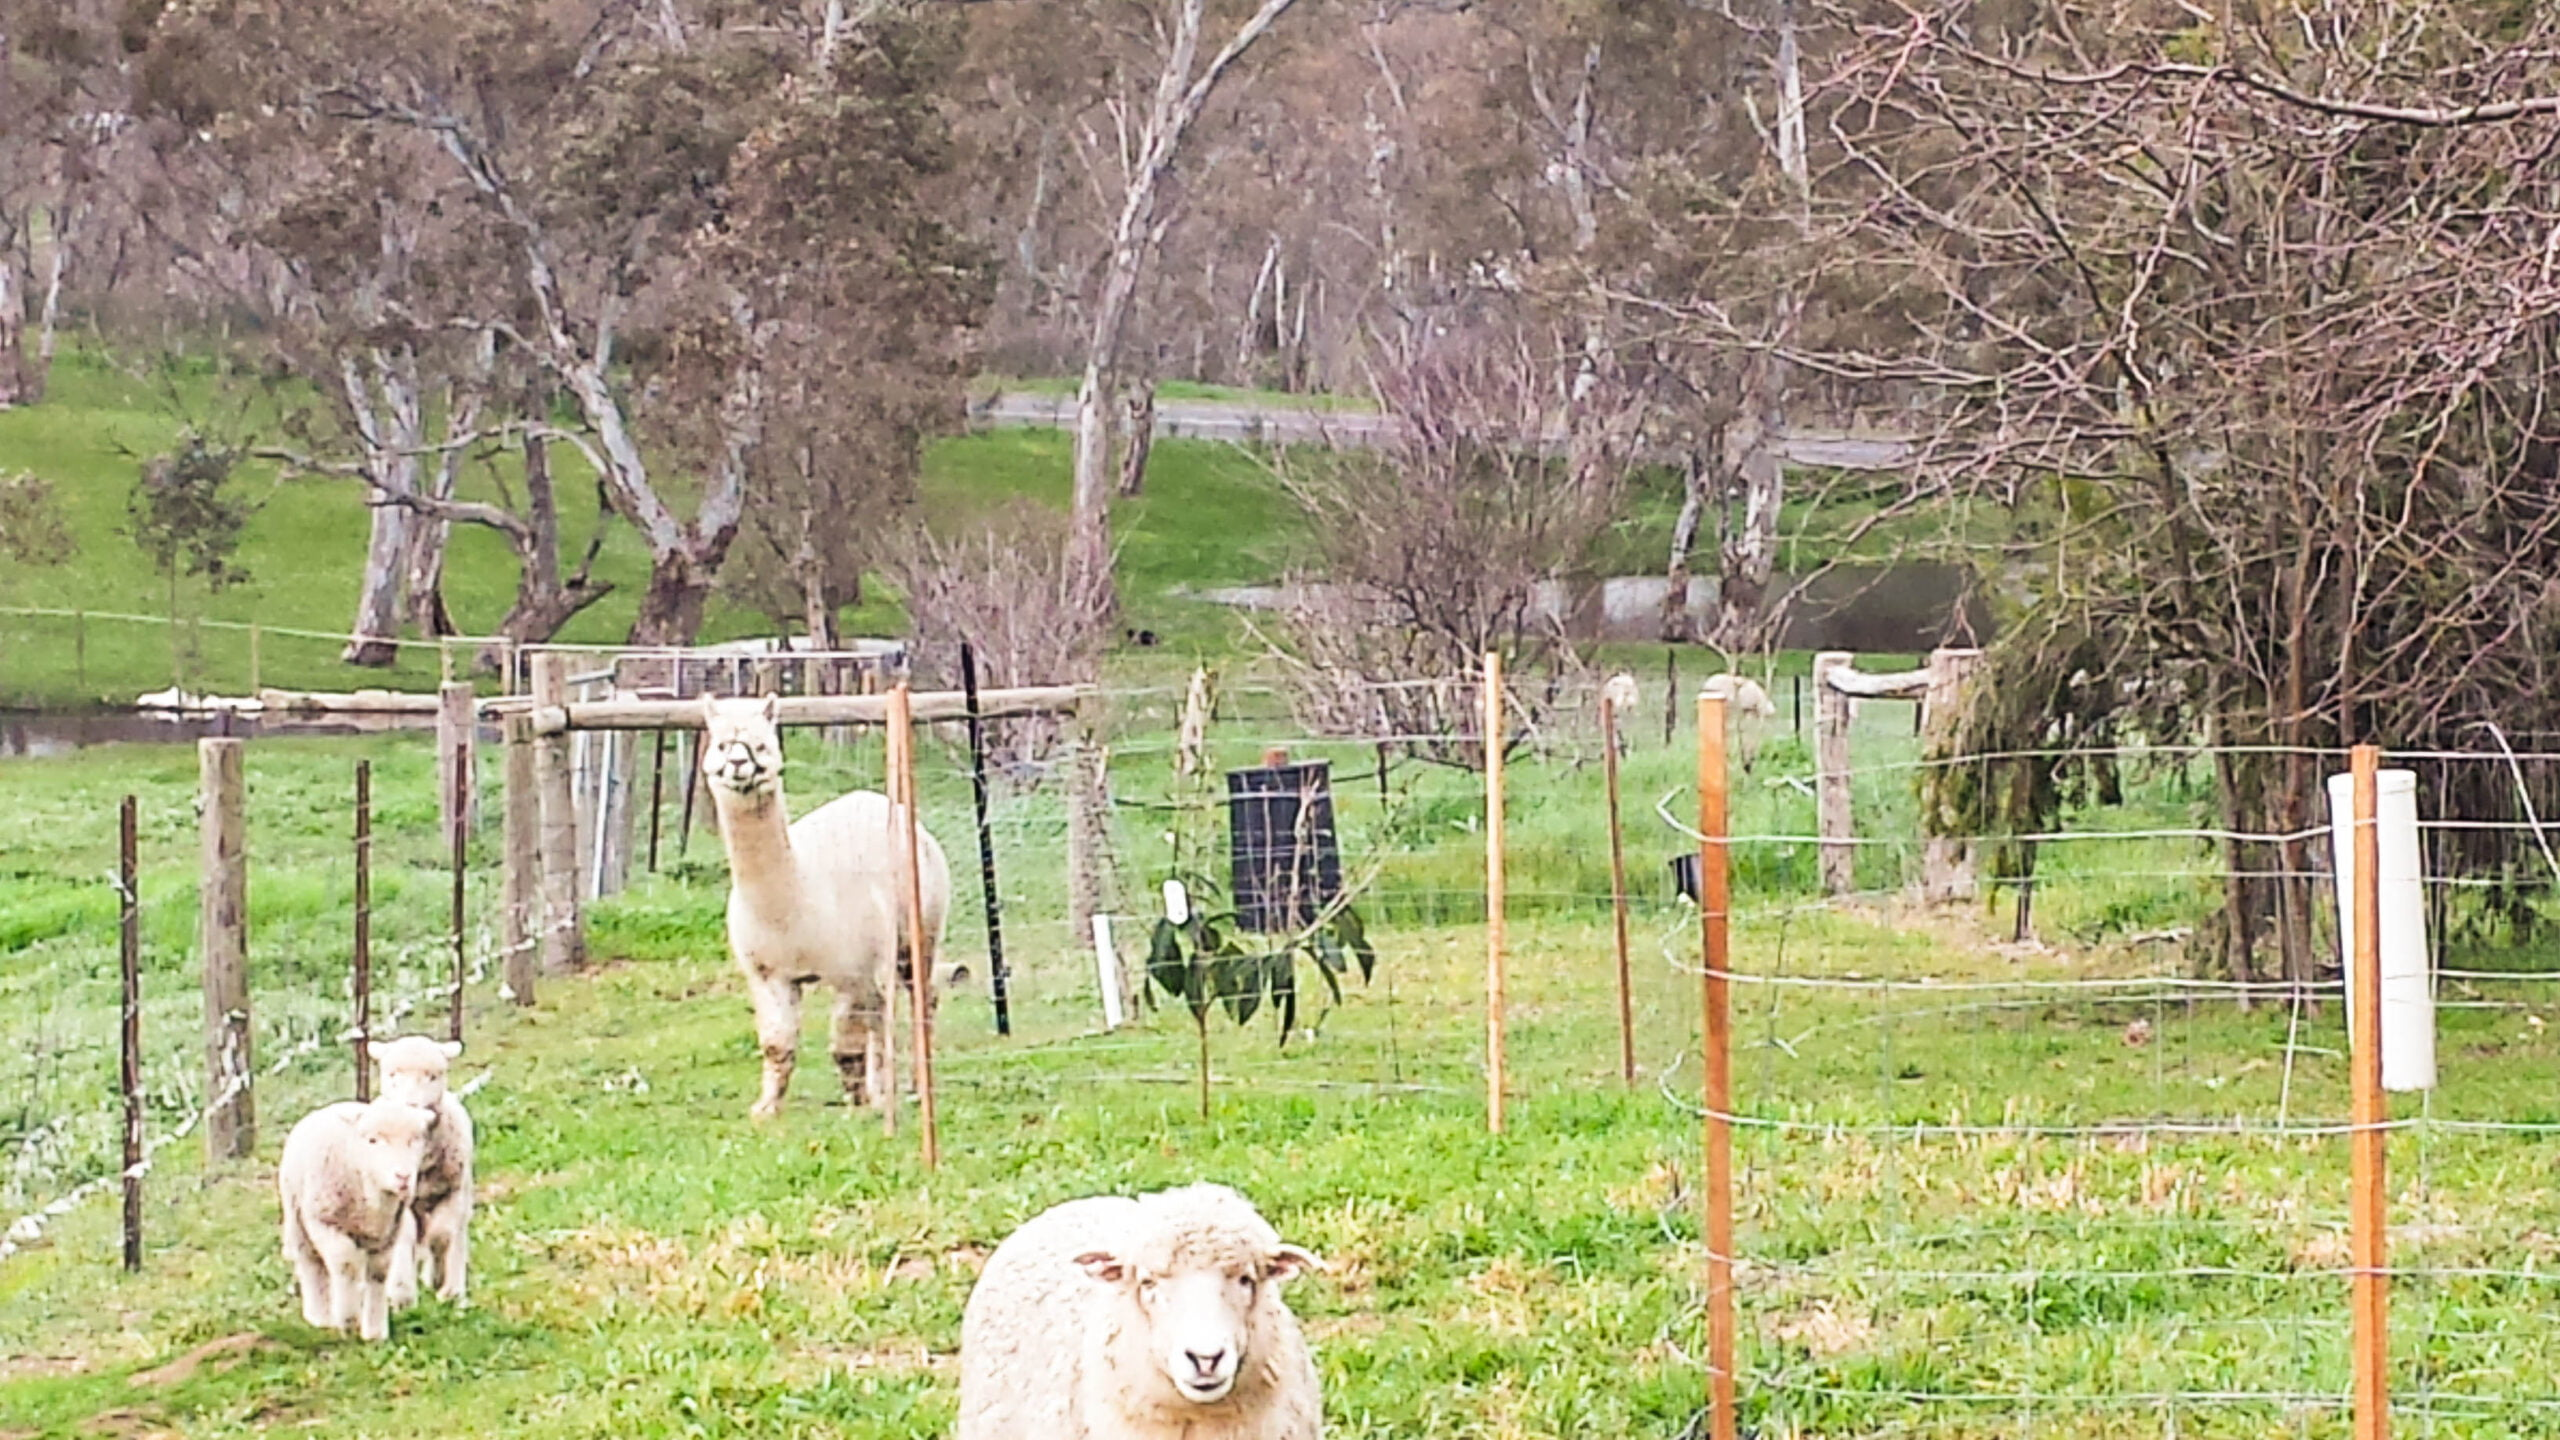 Fruit trees, animals, and electric netting